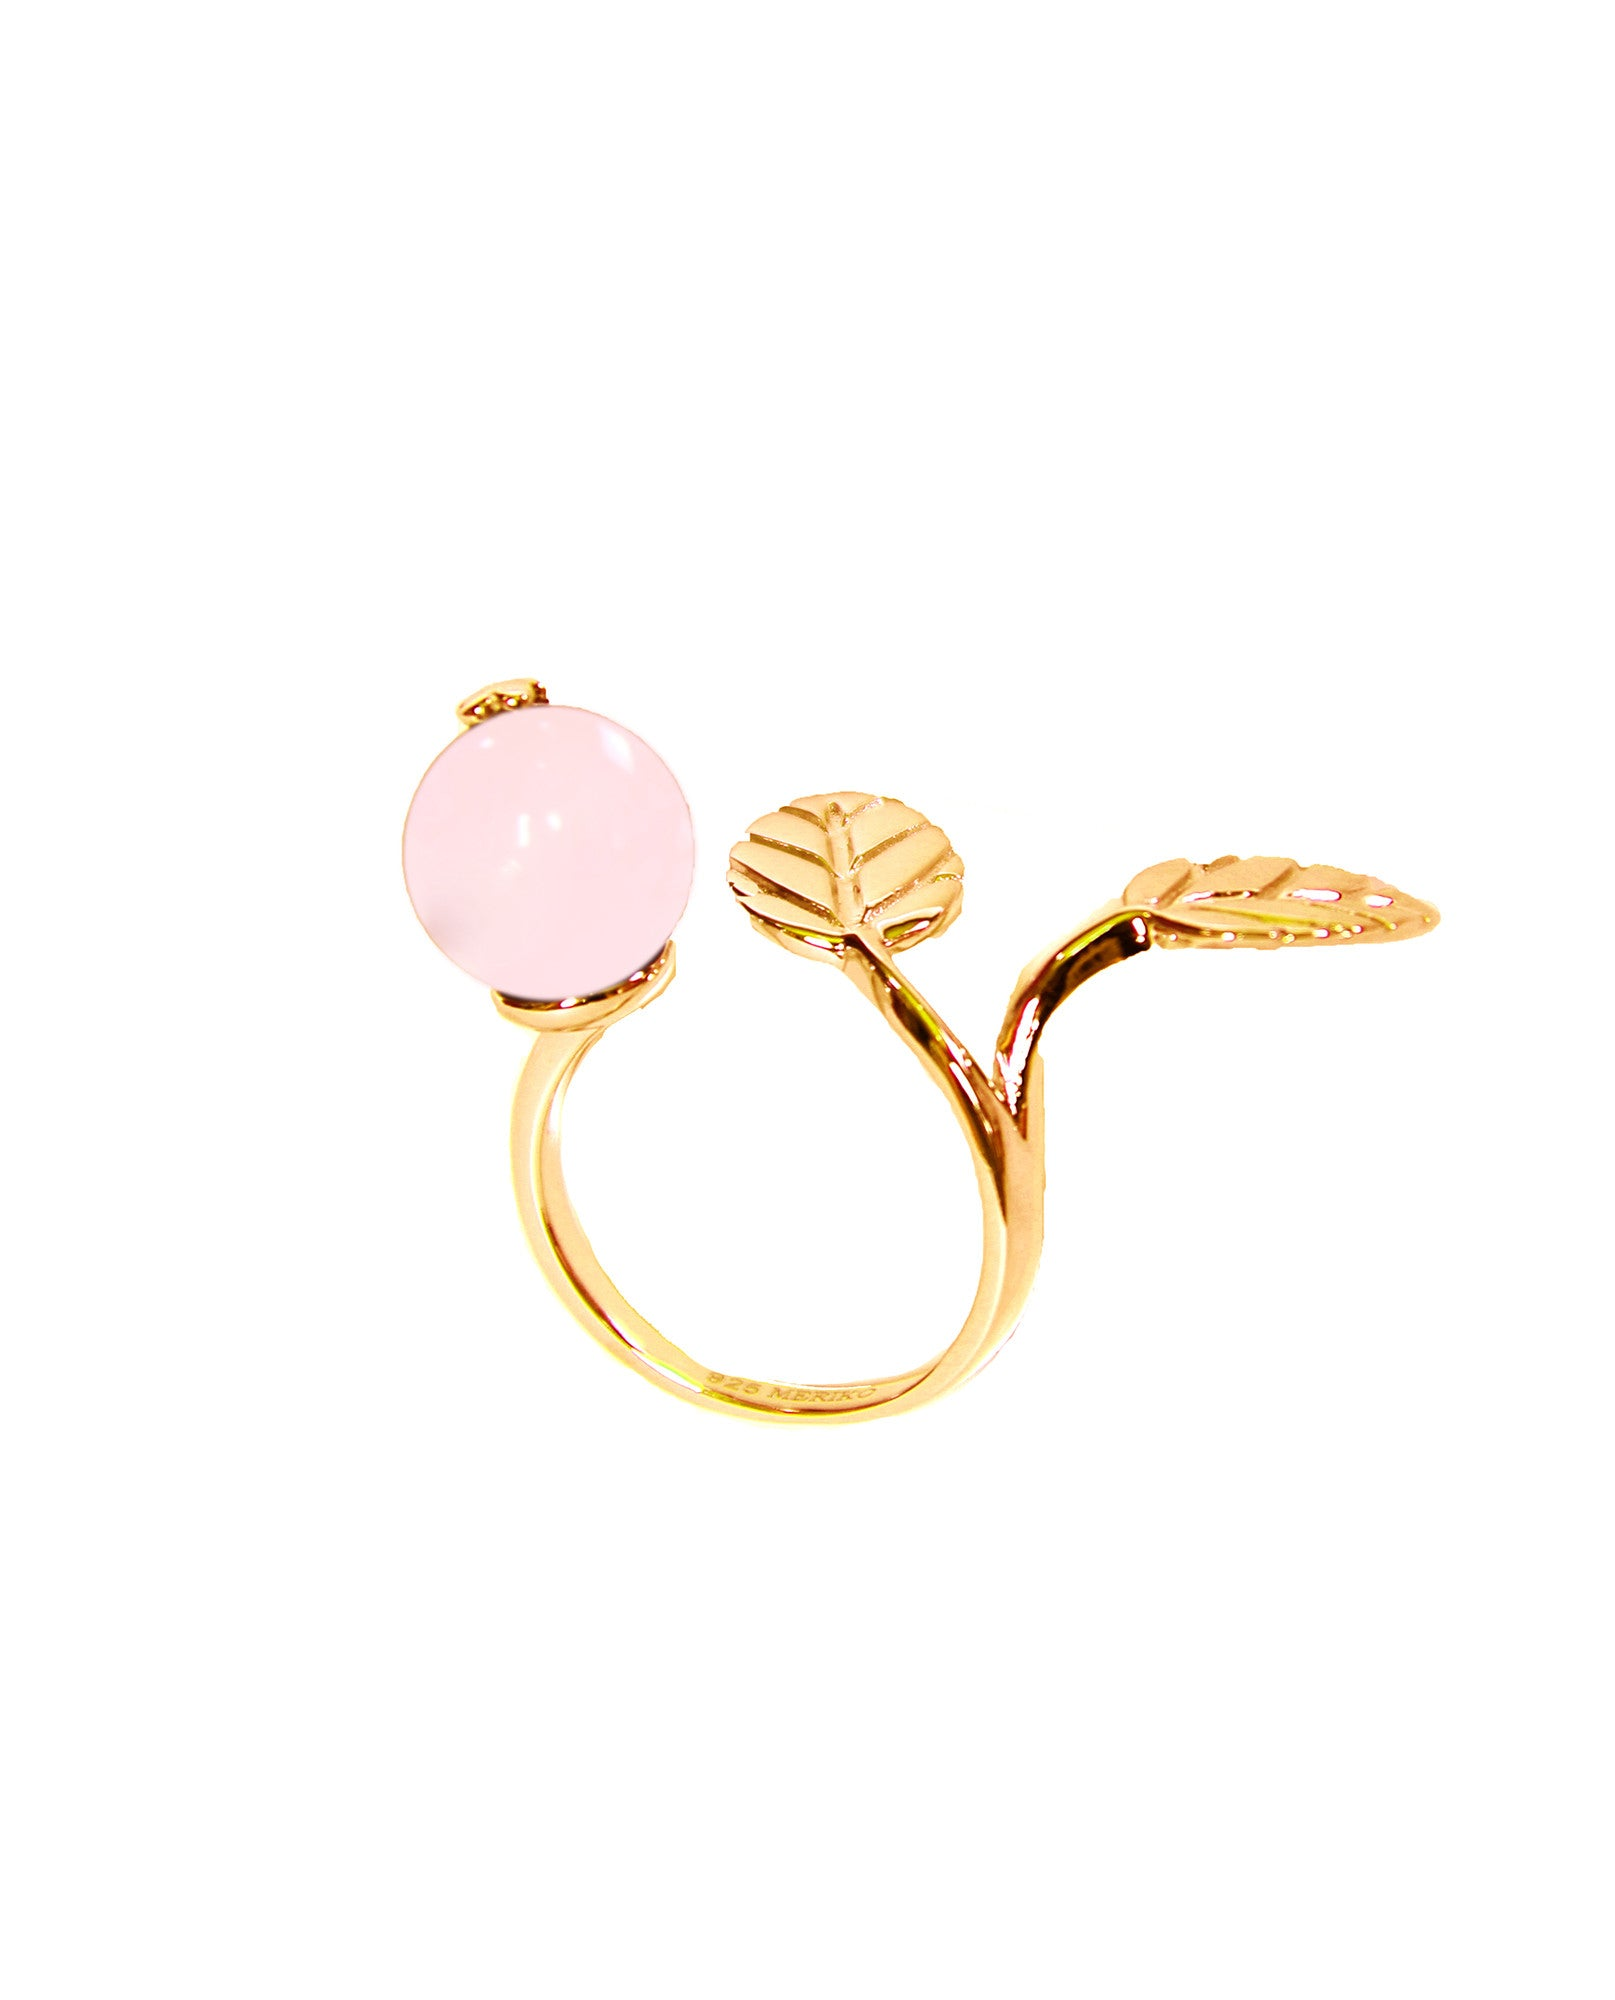 Meriko London - EXCLUSIVE-Rose Quartz & Gold 2 Finger Ring - The Velvet Closet - 1